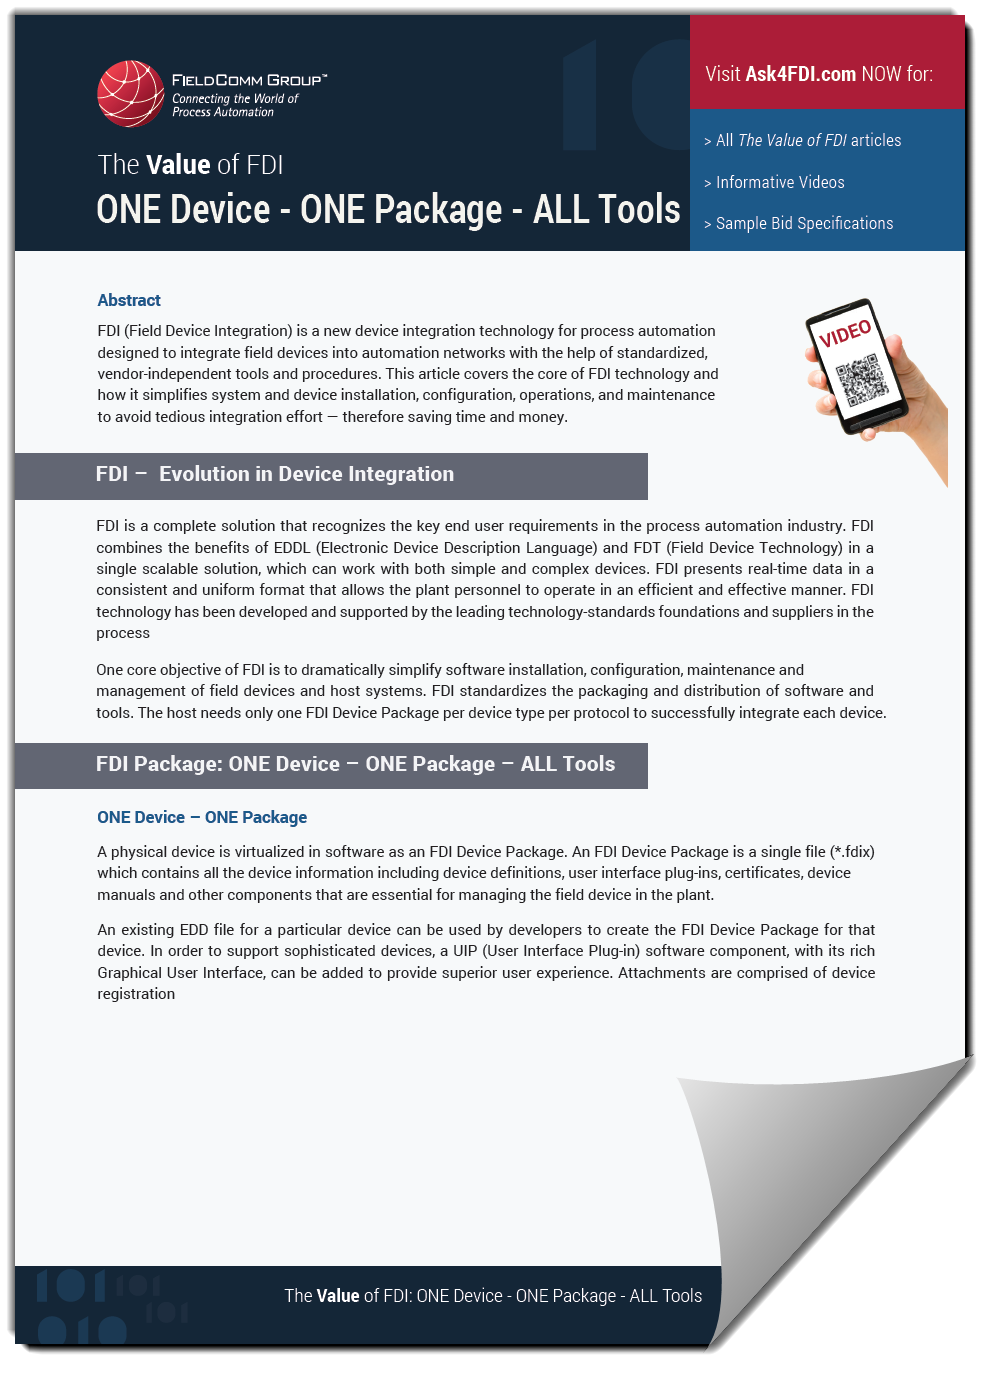 The Value of FDI:ONE Device - One Package - ALL Tools -